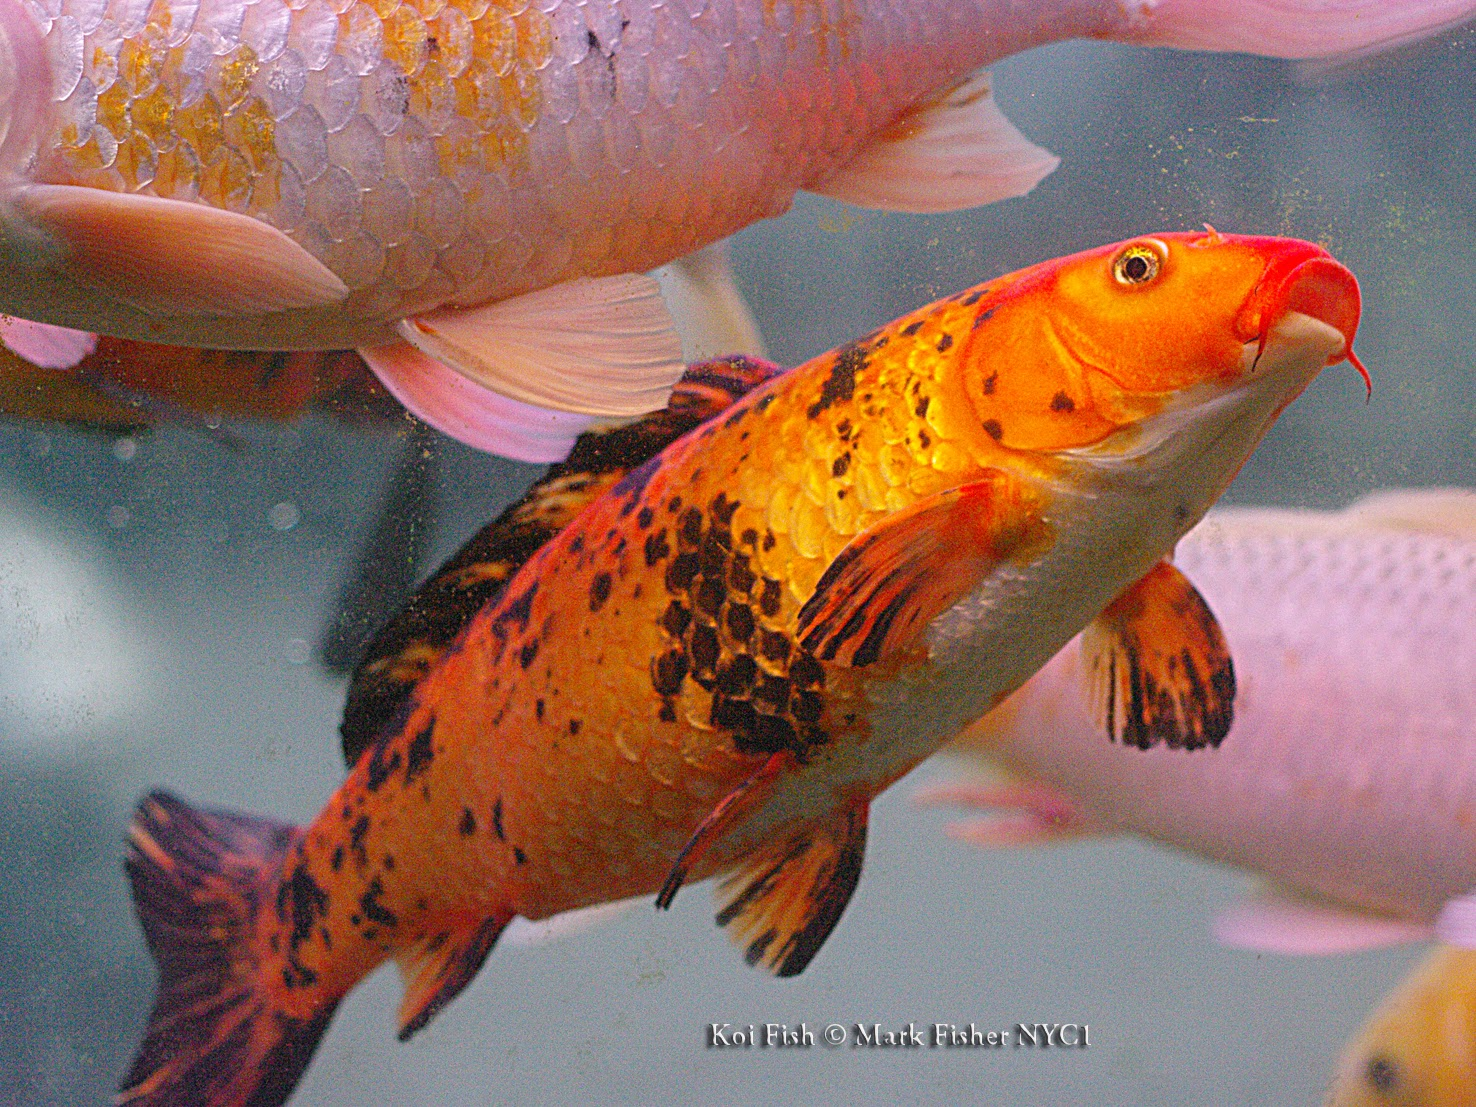 Mark fisher american photographer koi fish american for Japanese koi